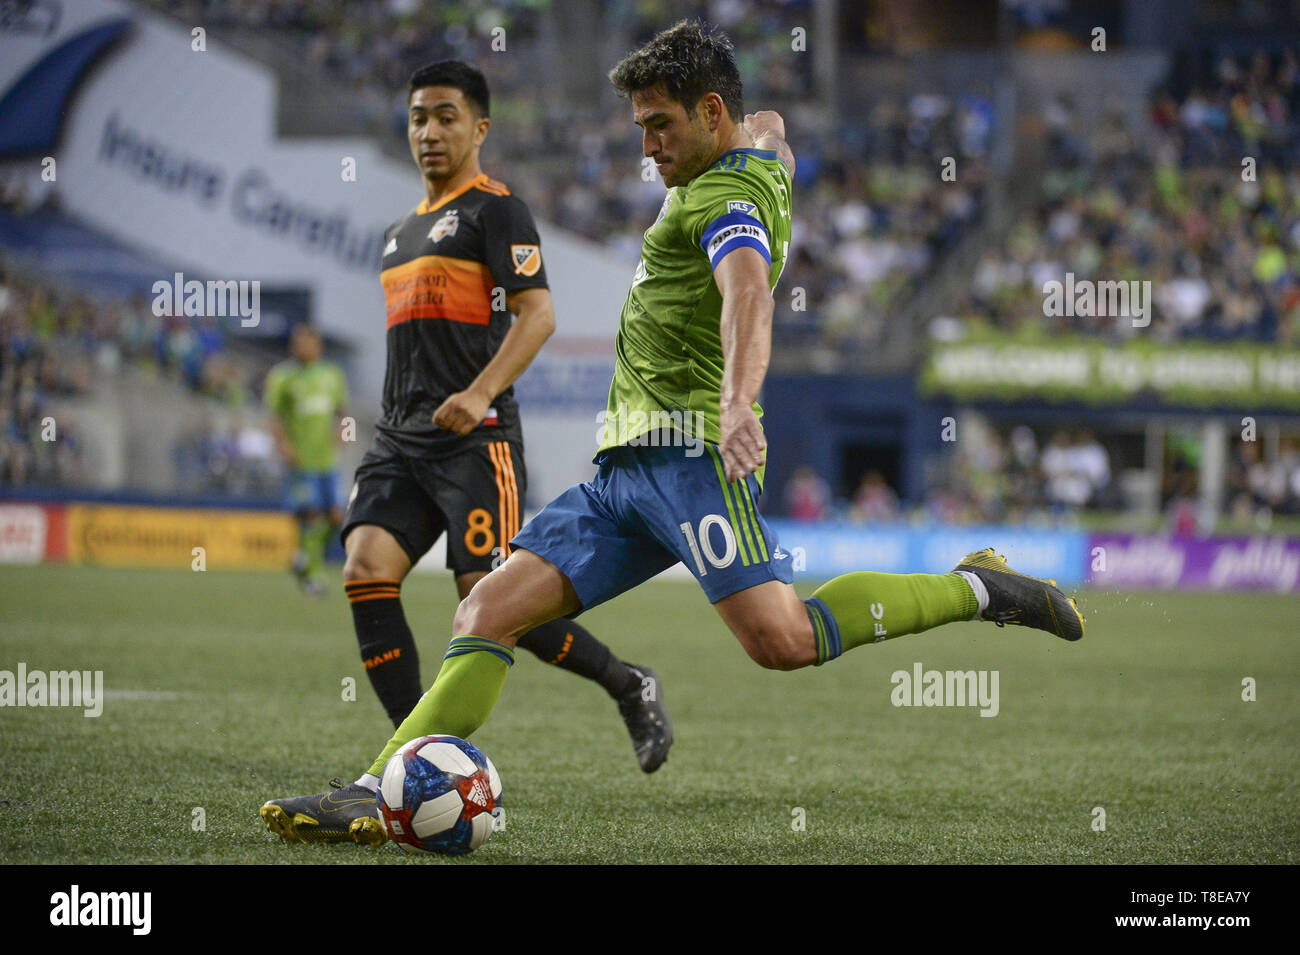 Seattle, Washington, USA. 11th May, 2019. Seattle forward Nico Lodeiro (10) takes a shot as the Houston Dynamo visits the Seattle Sounders in a MLS match at Century Link Field in Seattle, WA. Credit: Jeff Halstead/ZUMA Wire/Alamy Live News - Stock Image